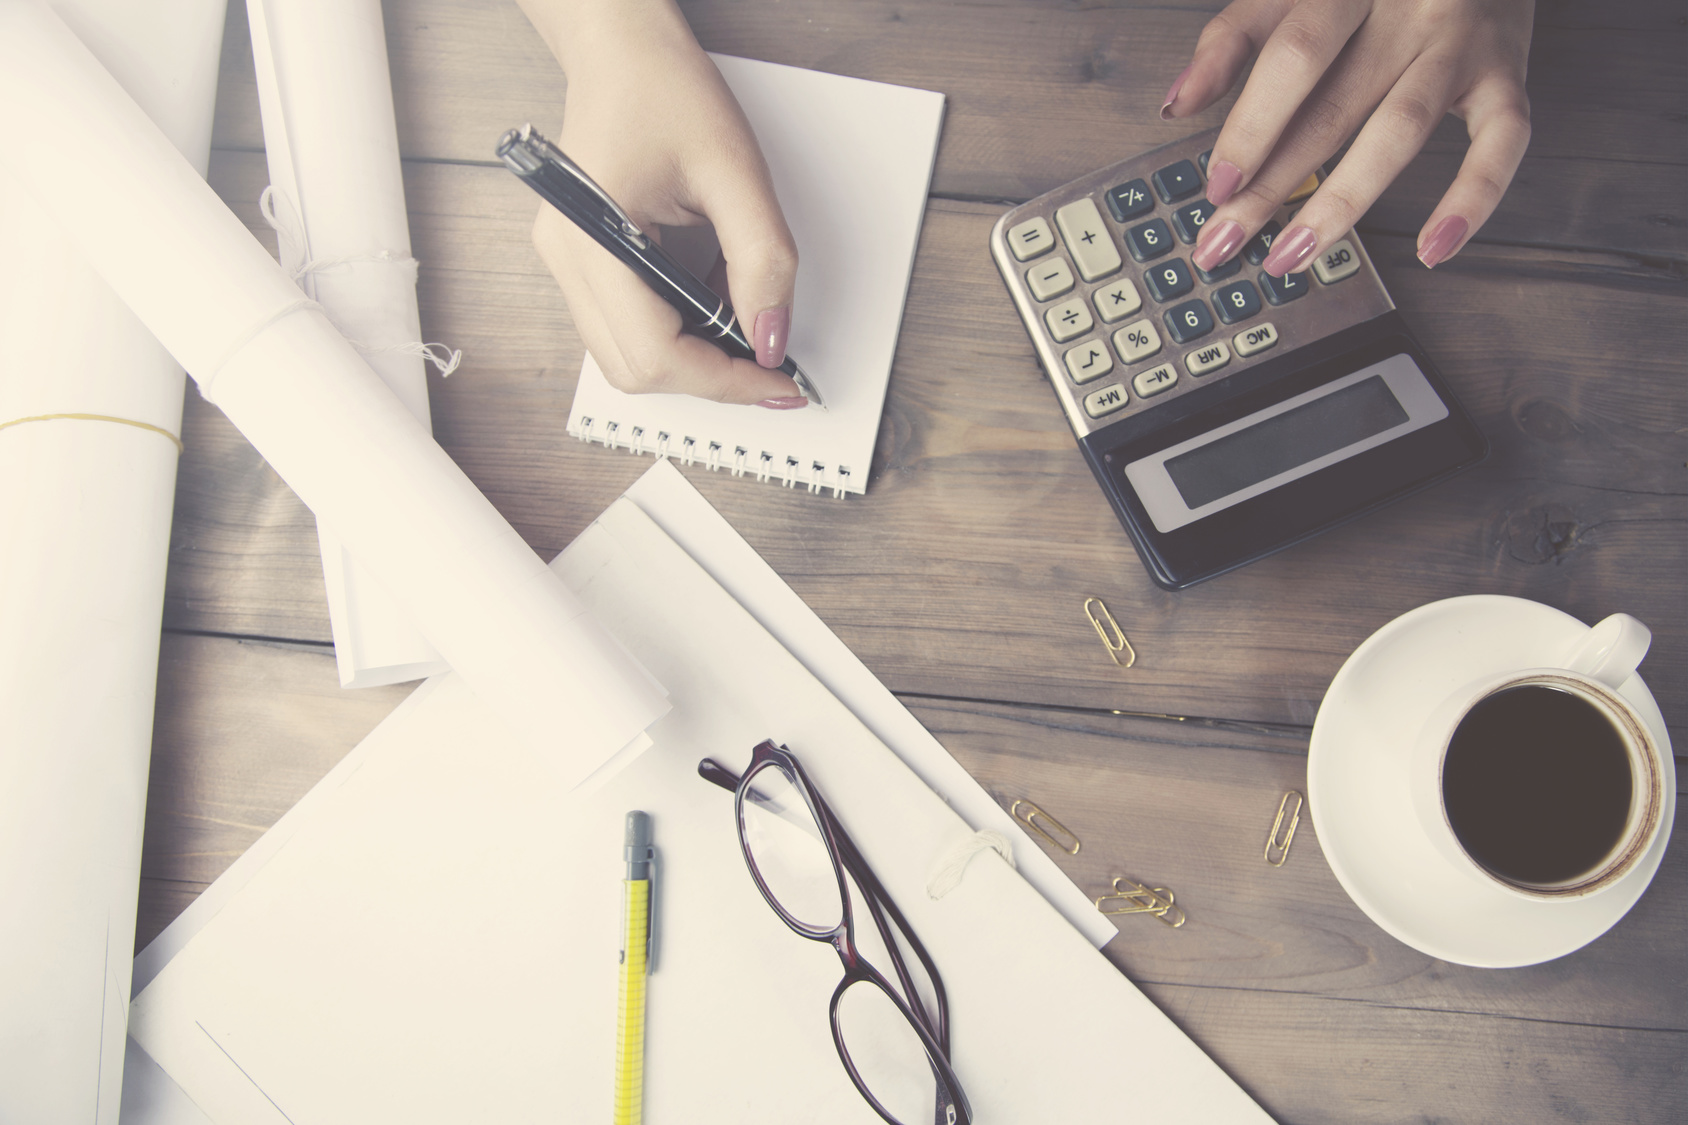 Aides-financiC3A8res-Fotolia_111122776_Subscription_Monthly_M